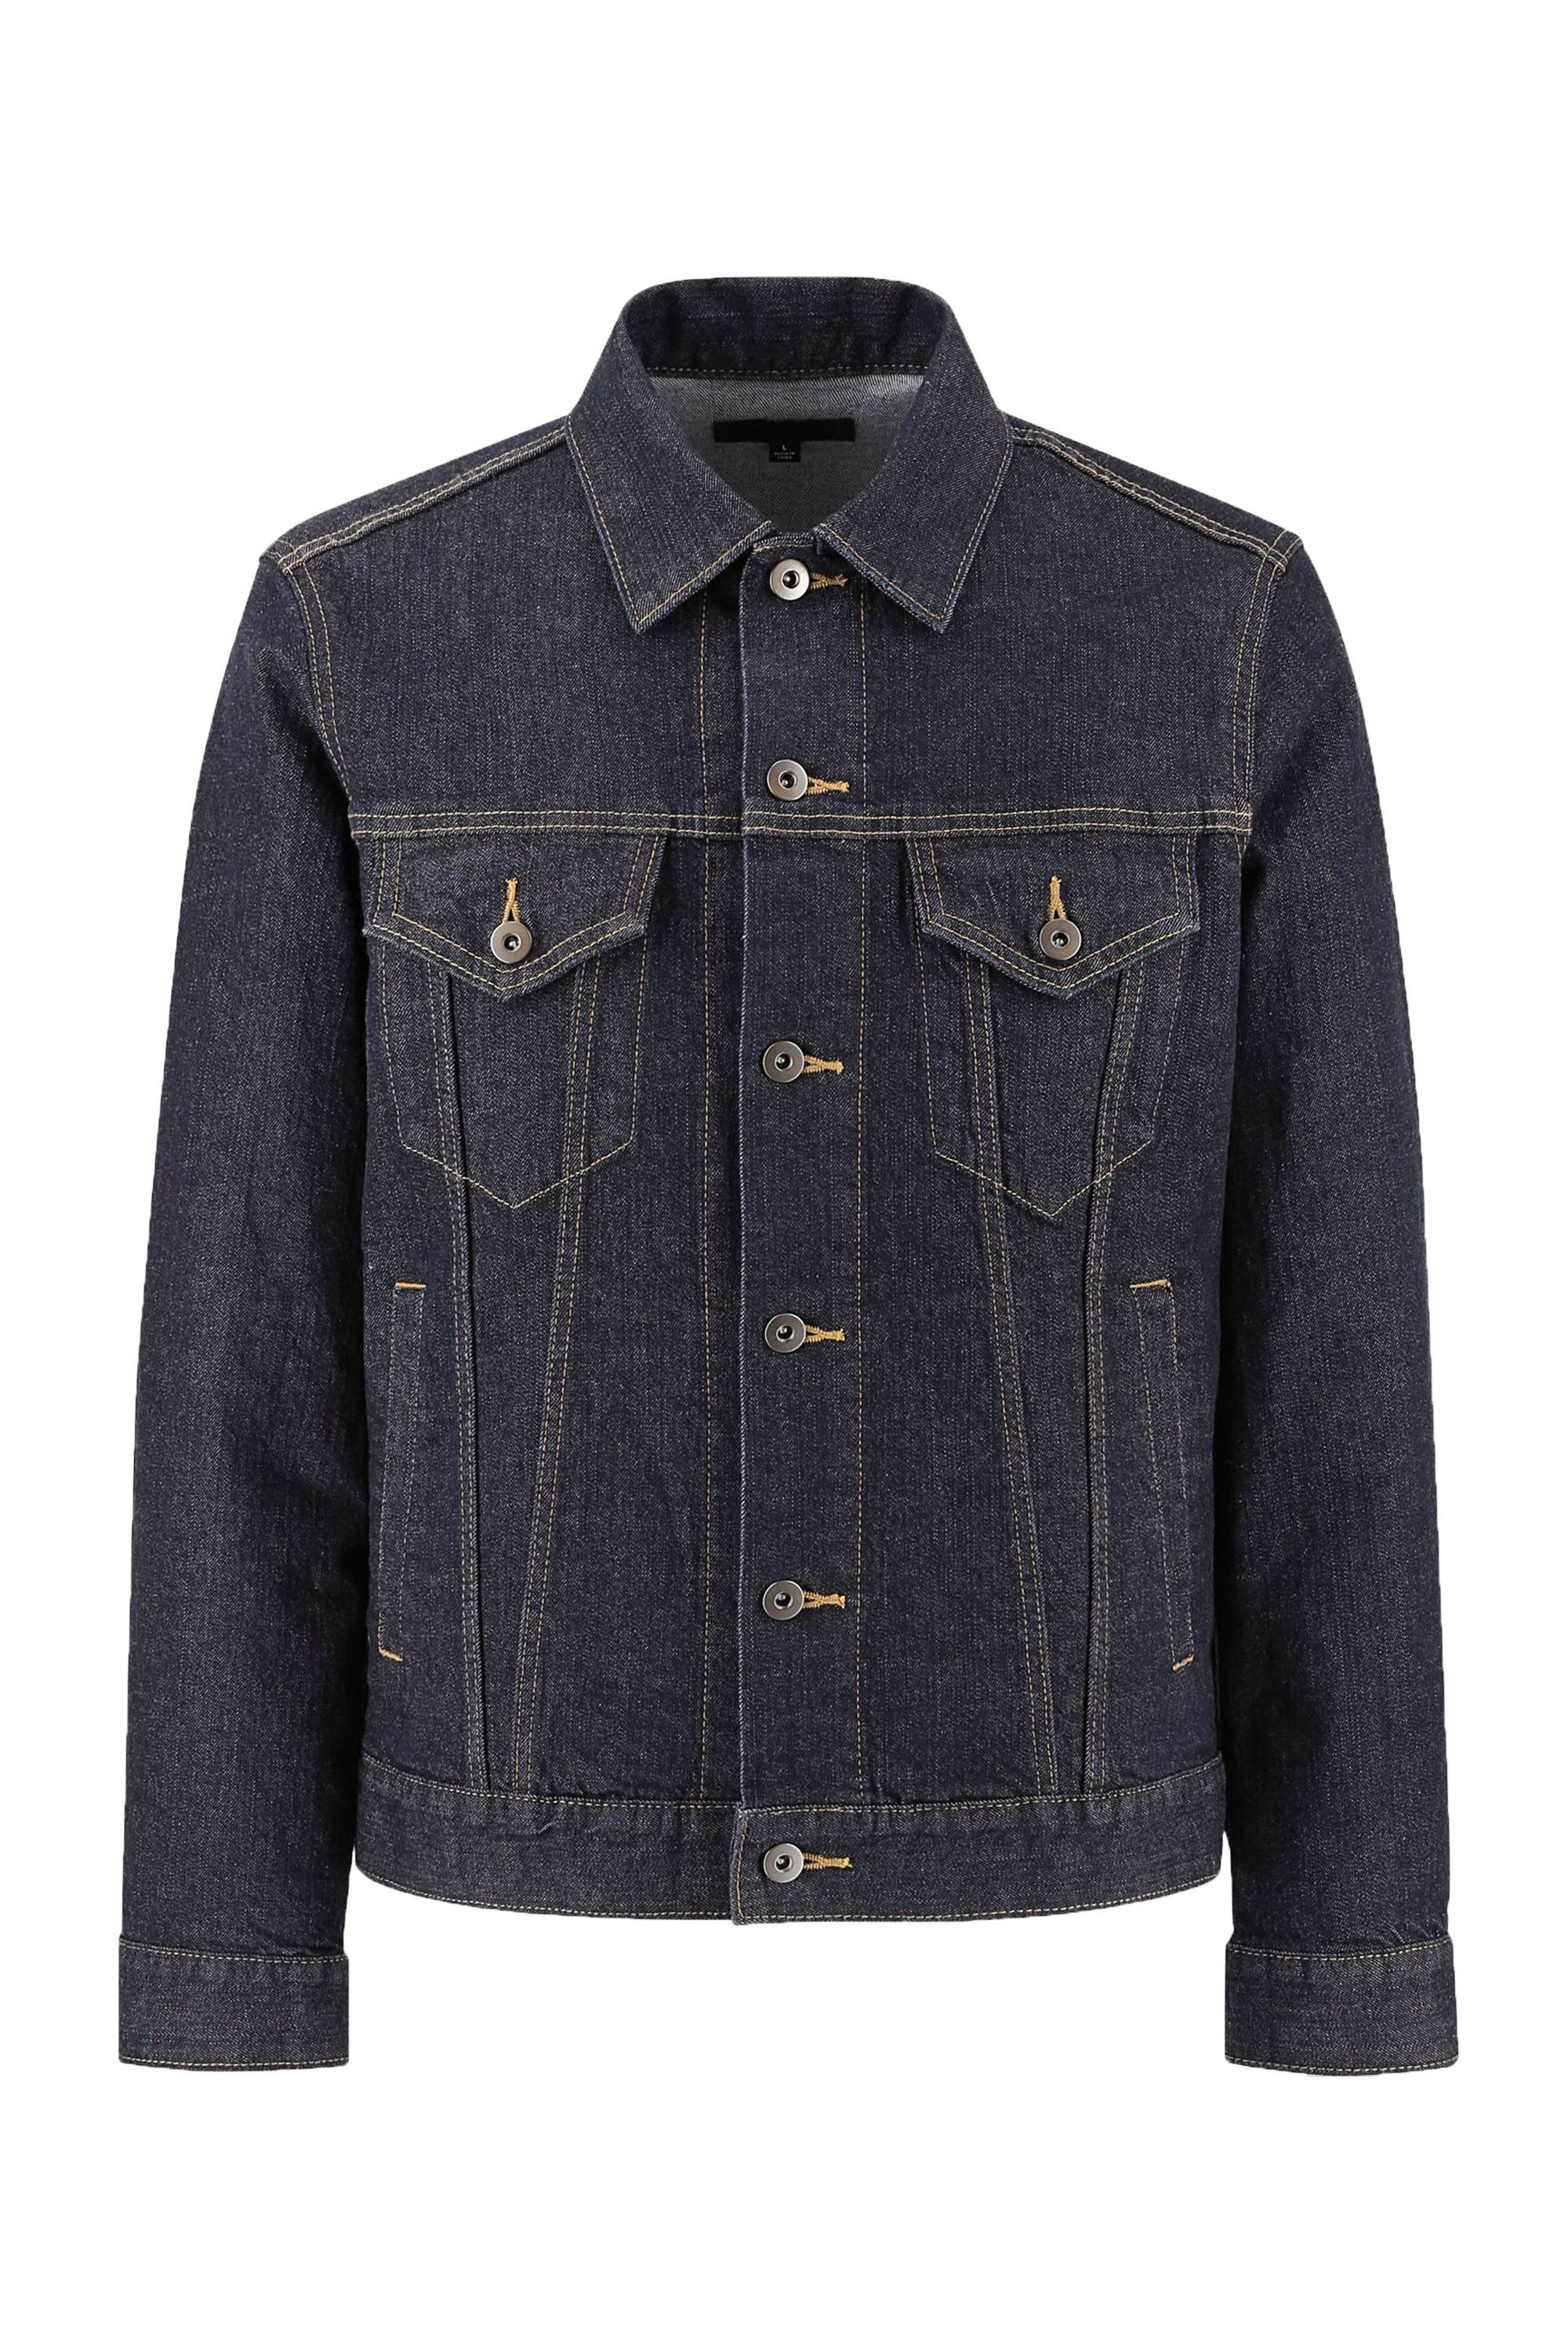 Denim Jacket Uniqlo uniqlo.com $39.90 SHOP NOW A trusty denim jacket should hang in everyone's closet, and Uniqlo makes one that looks like it should cost ten times its price.